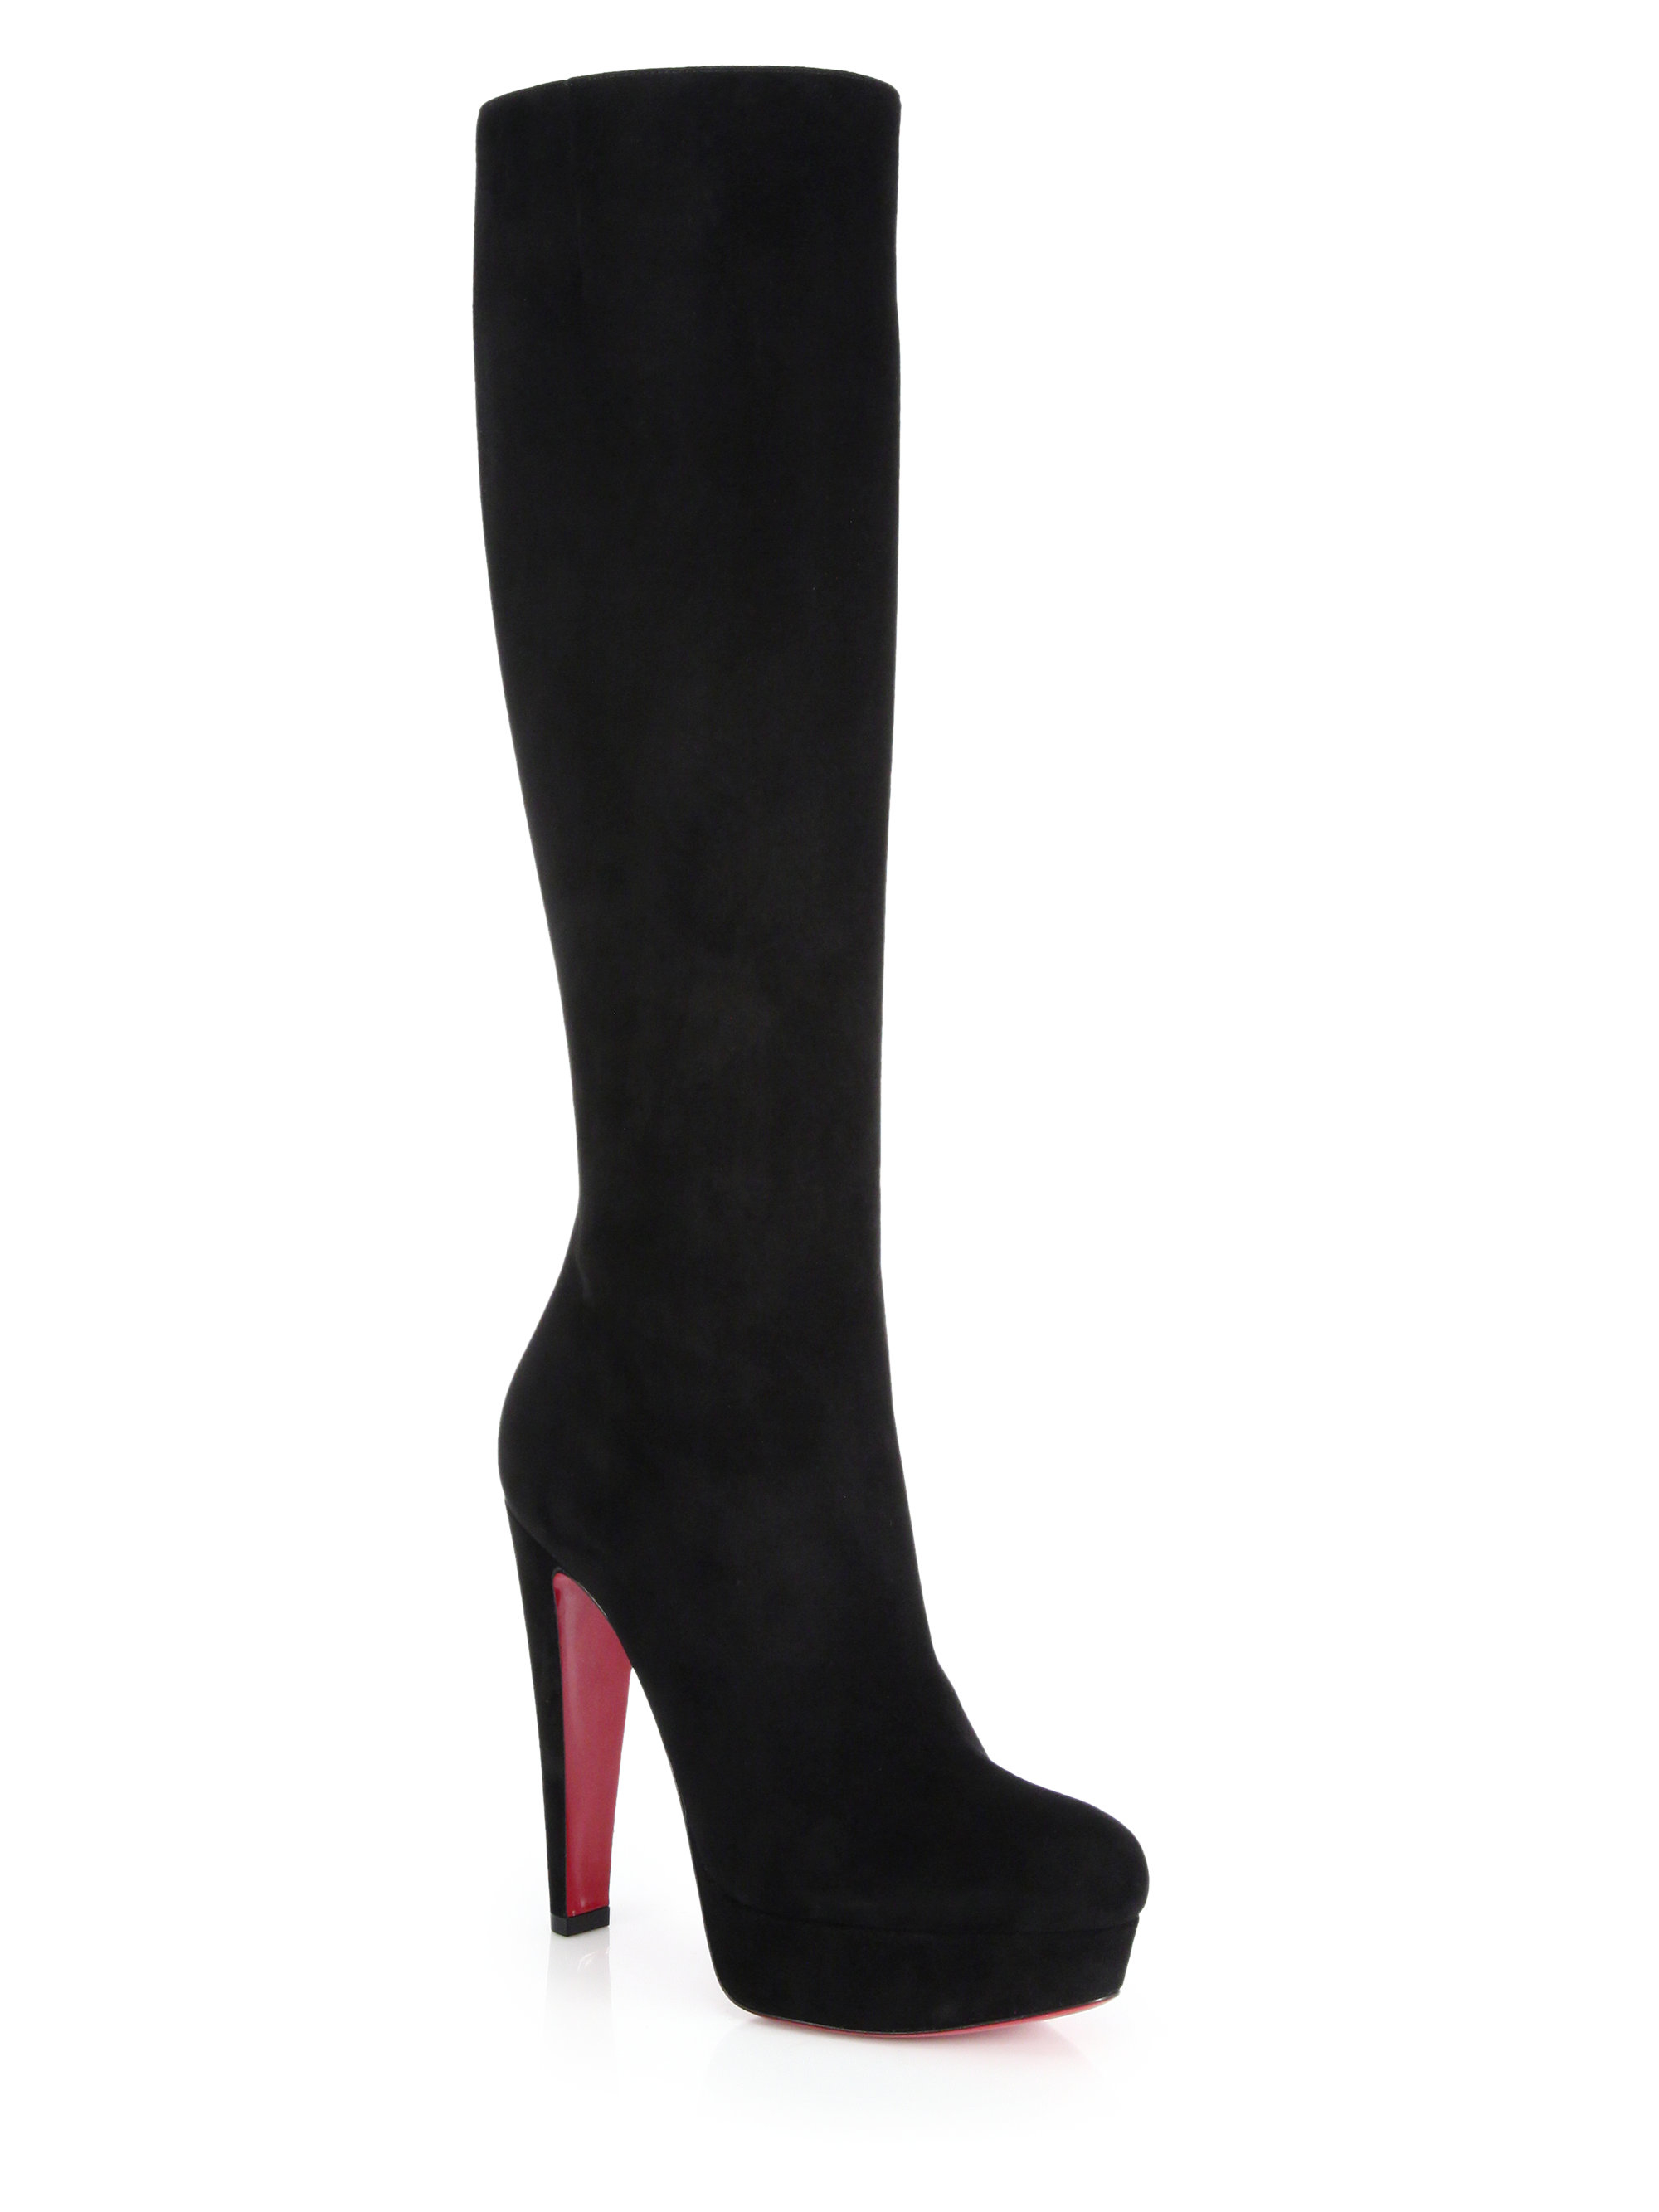 87626062797e Lyst - Christian Louboutin Lady Suede Knee-high Platform Boots in Black